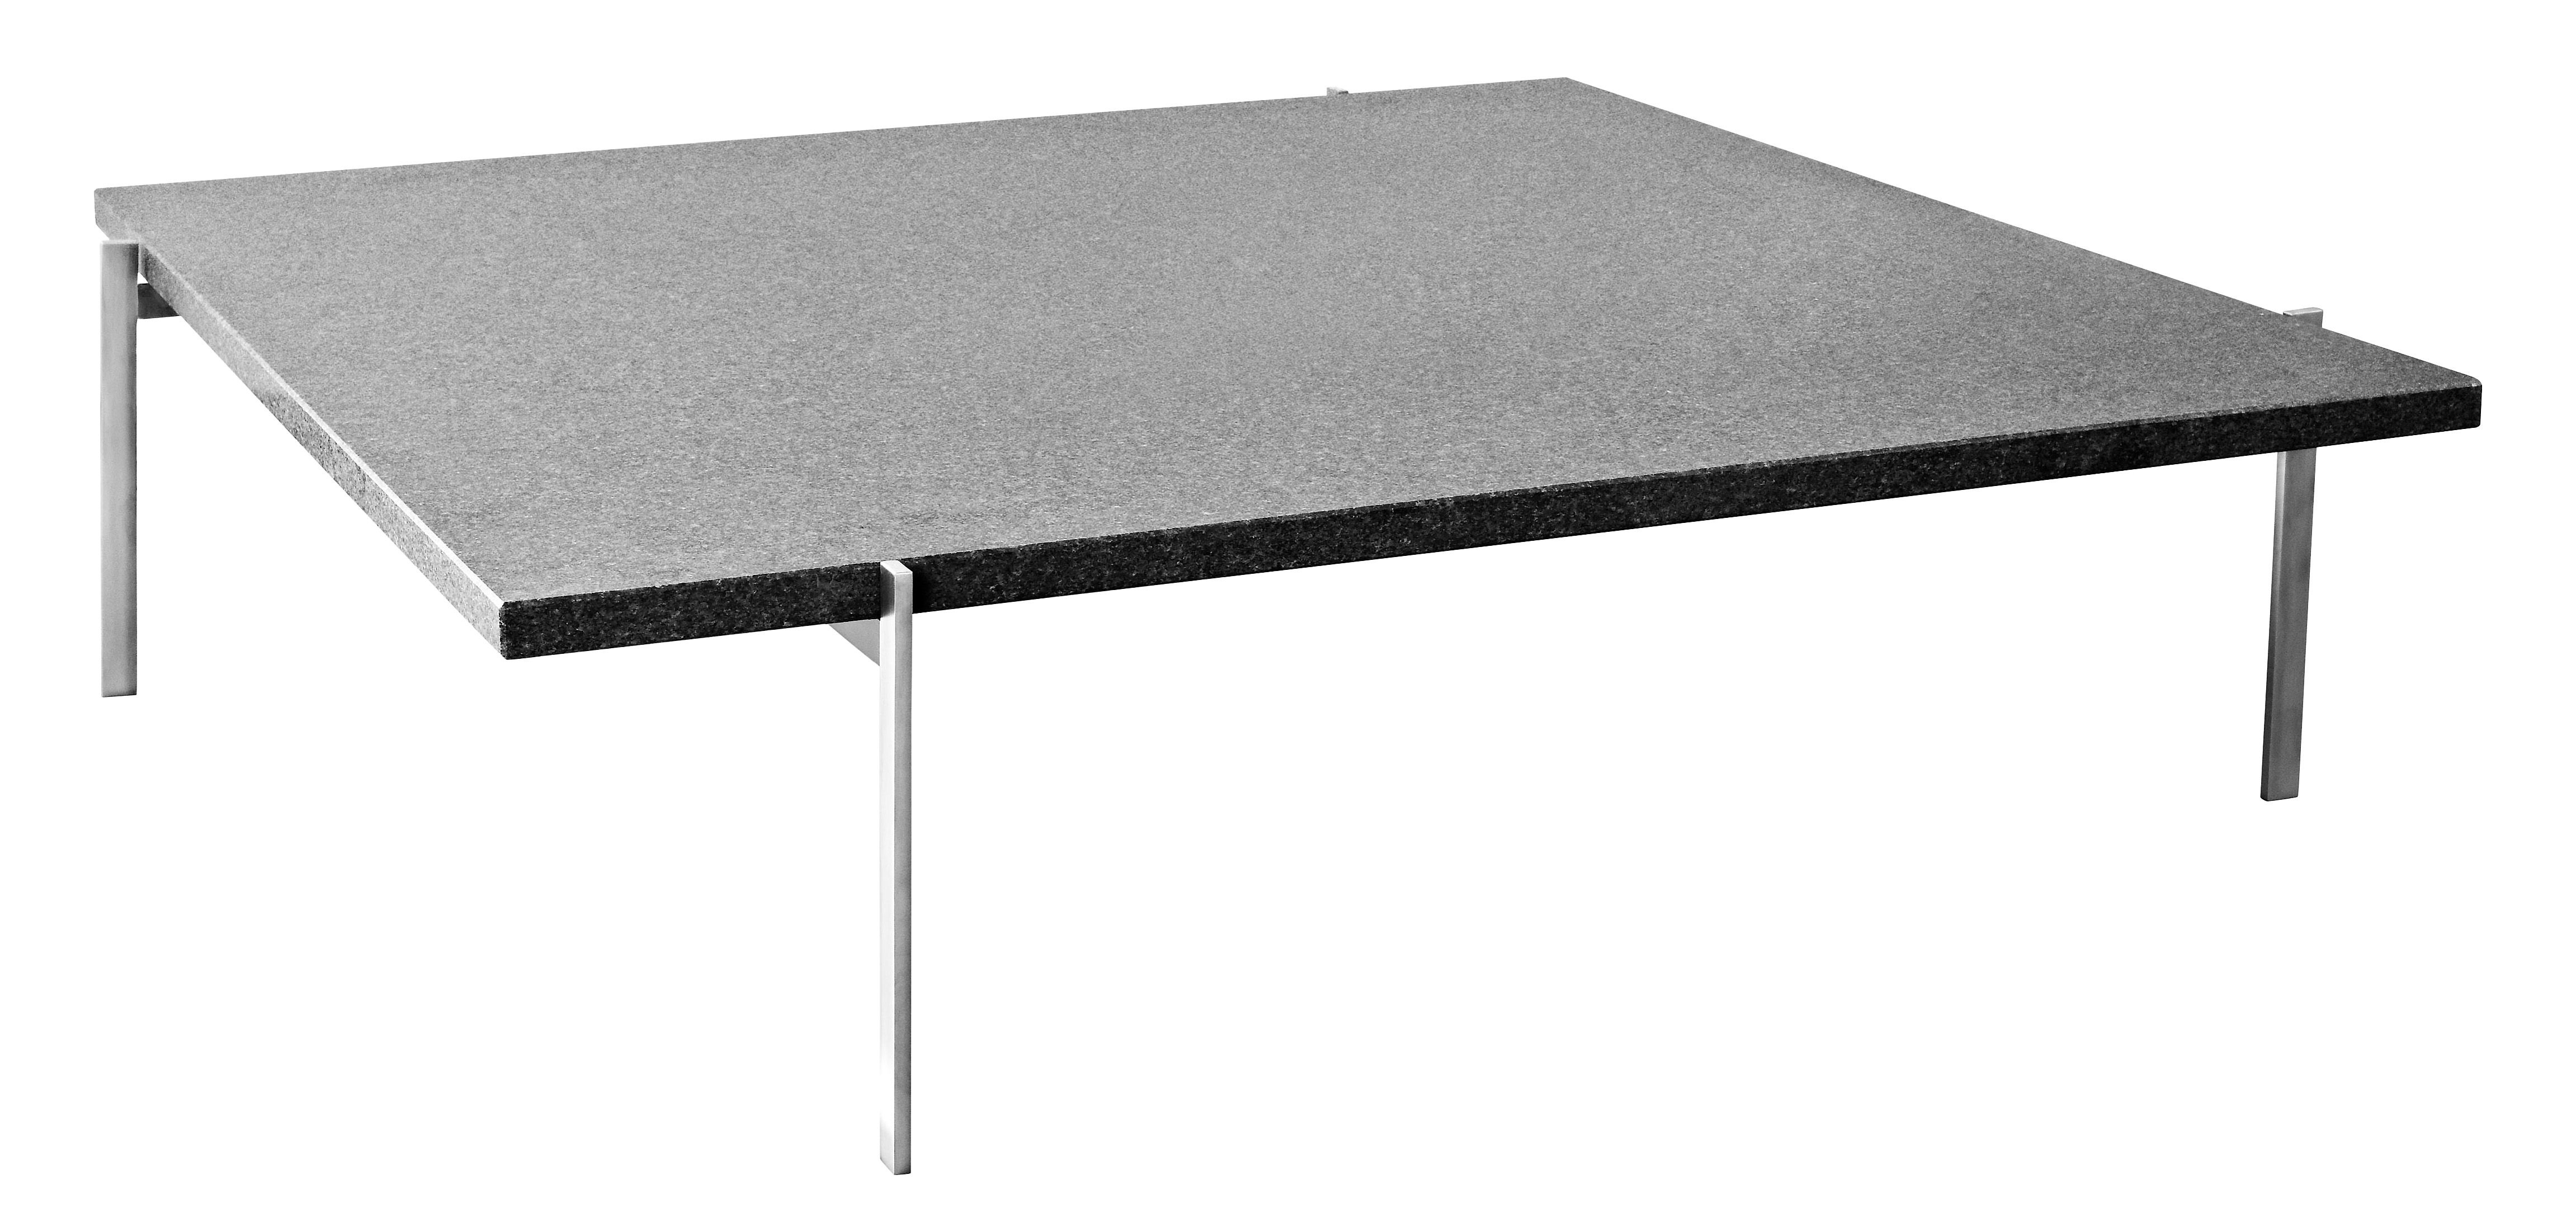 Pk 61 coffee table 80 x 80 cm marble top by fritz hansen for Coffee table 80 x 80